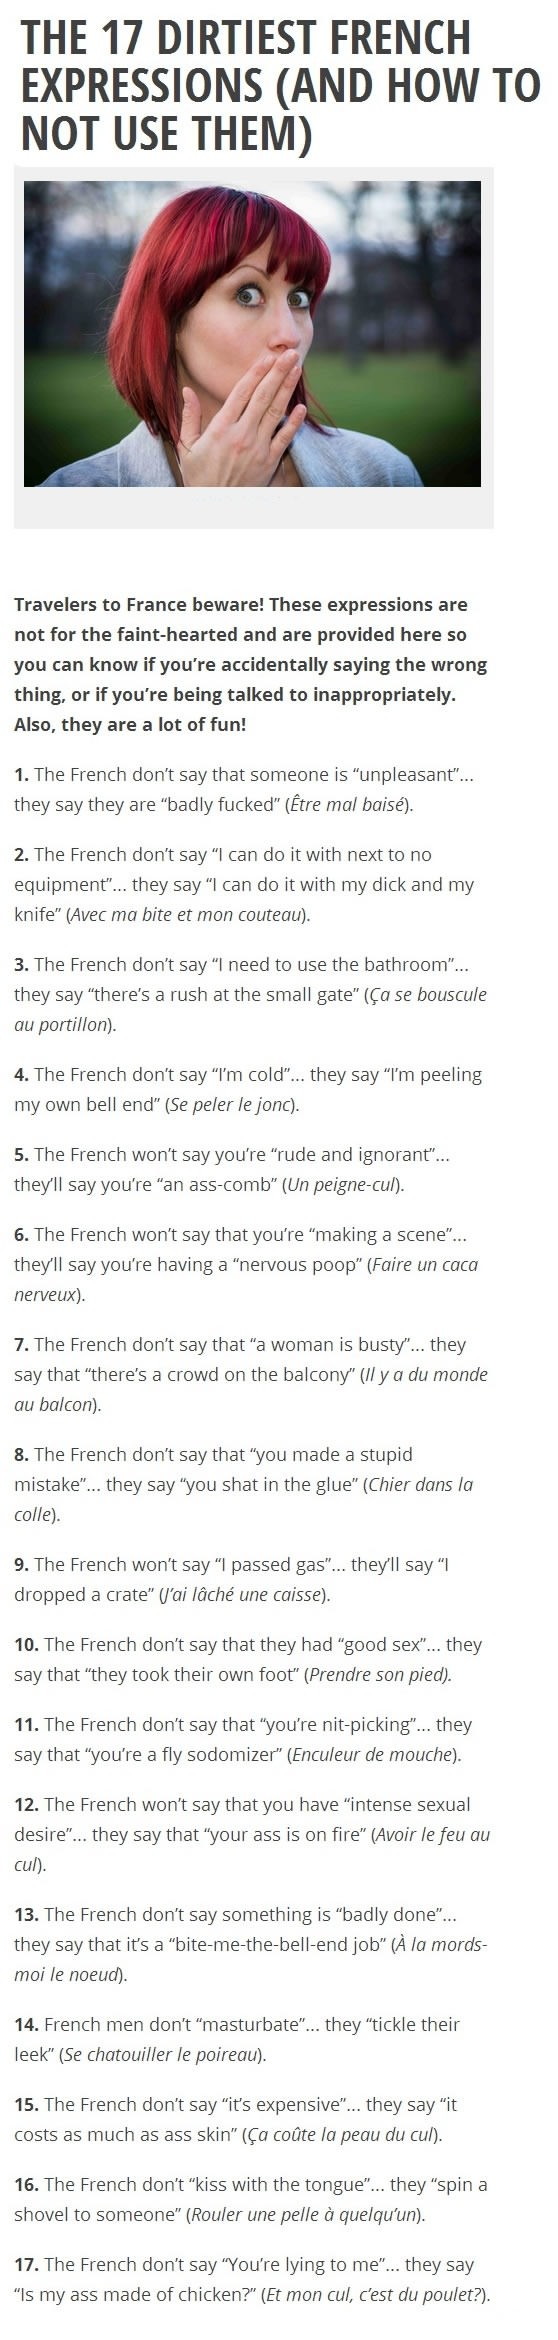 Most romantic language